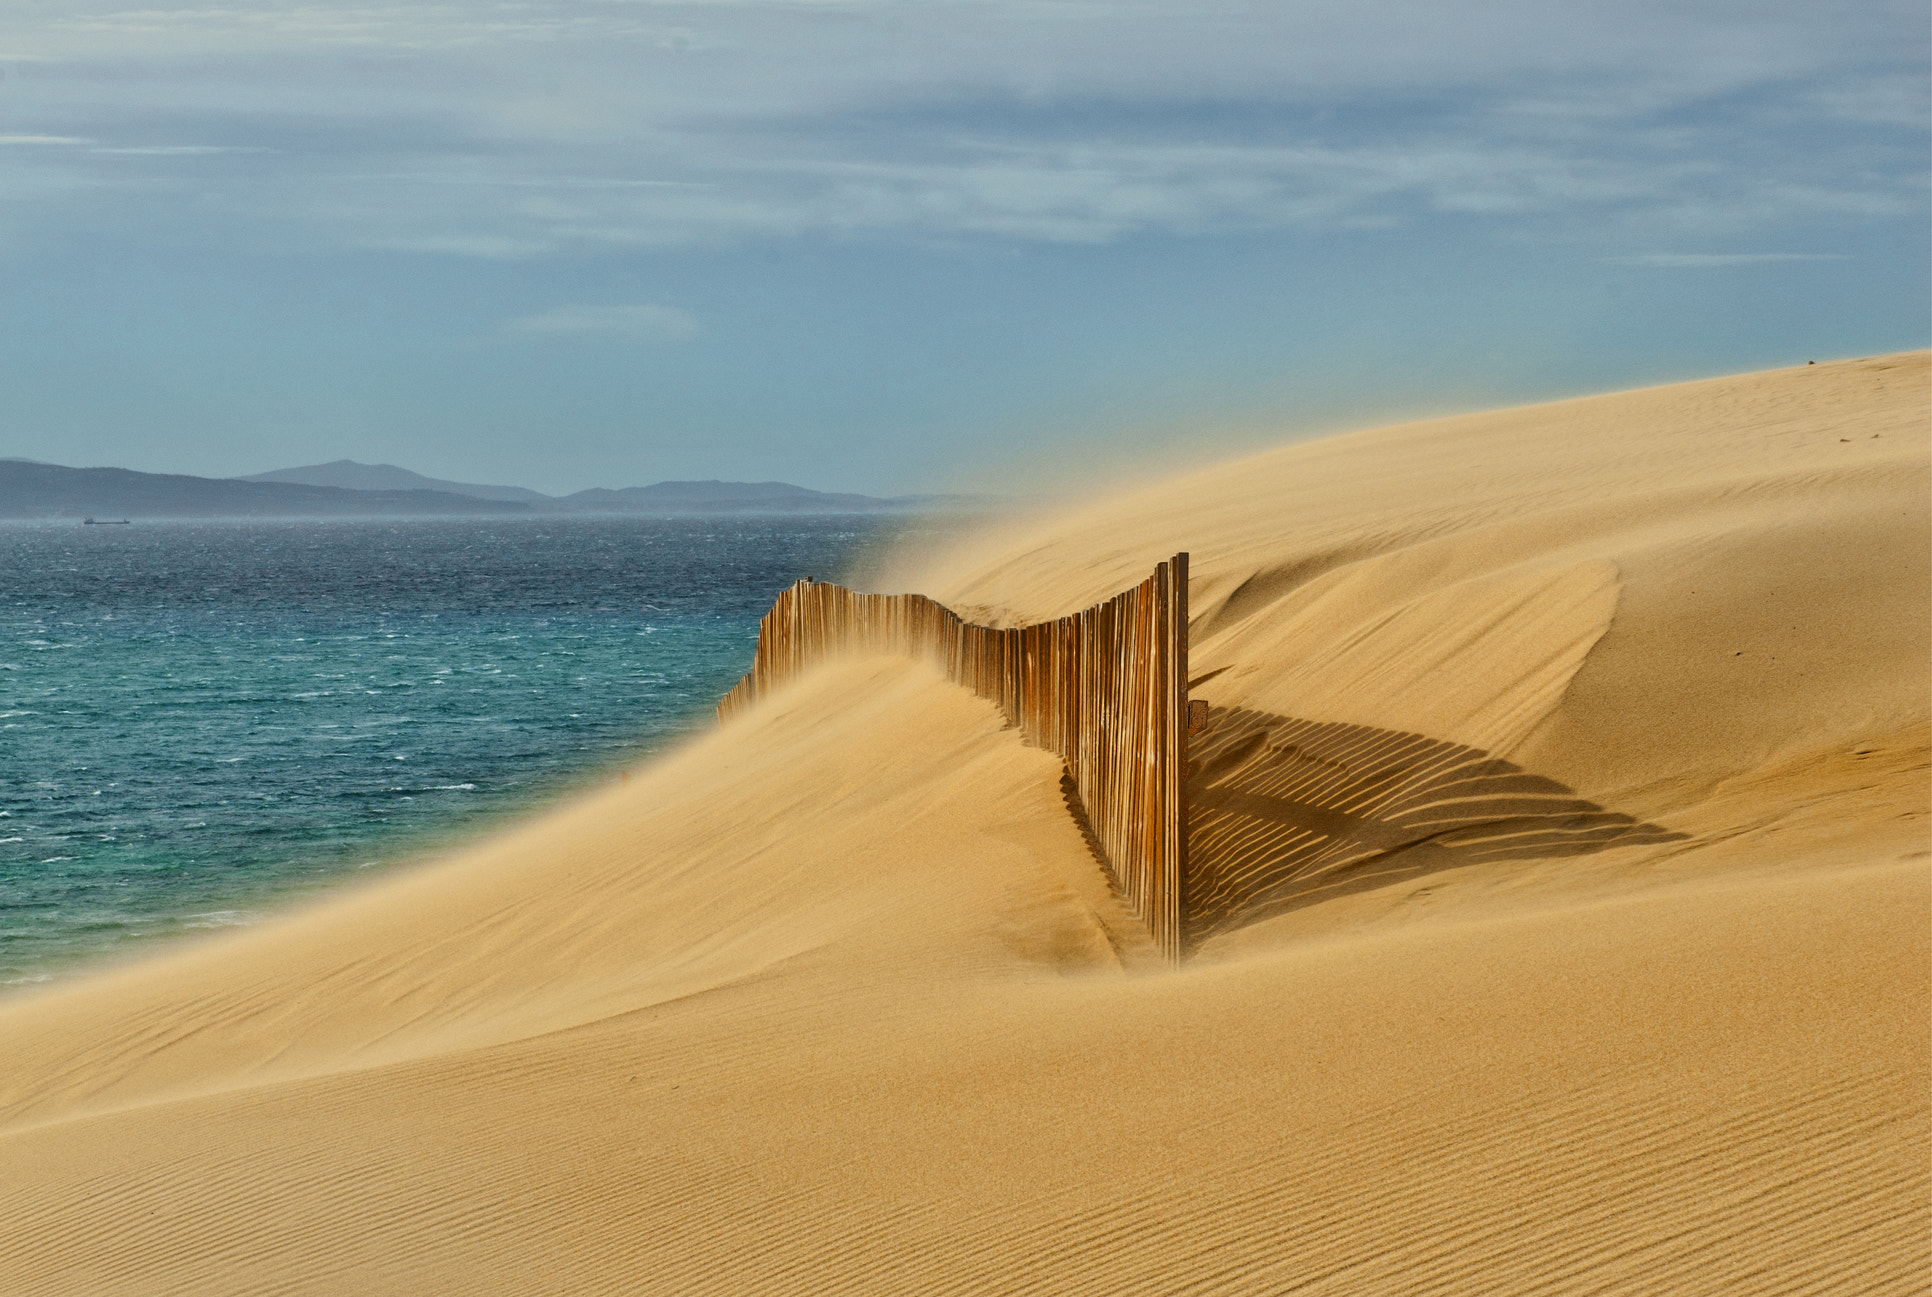 Photograph Dunas de Tarifa by César Comino García on 500px